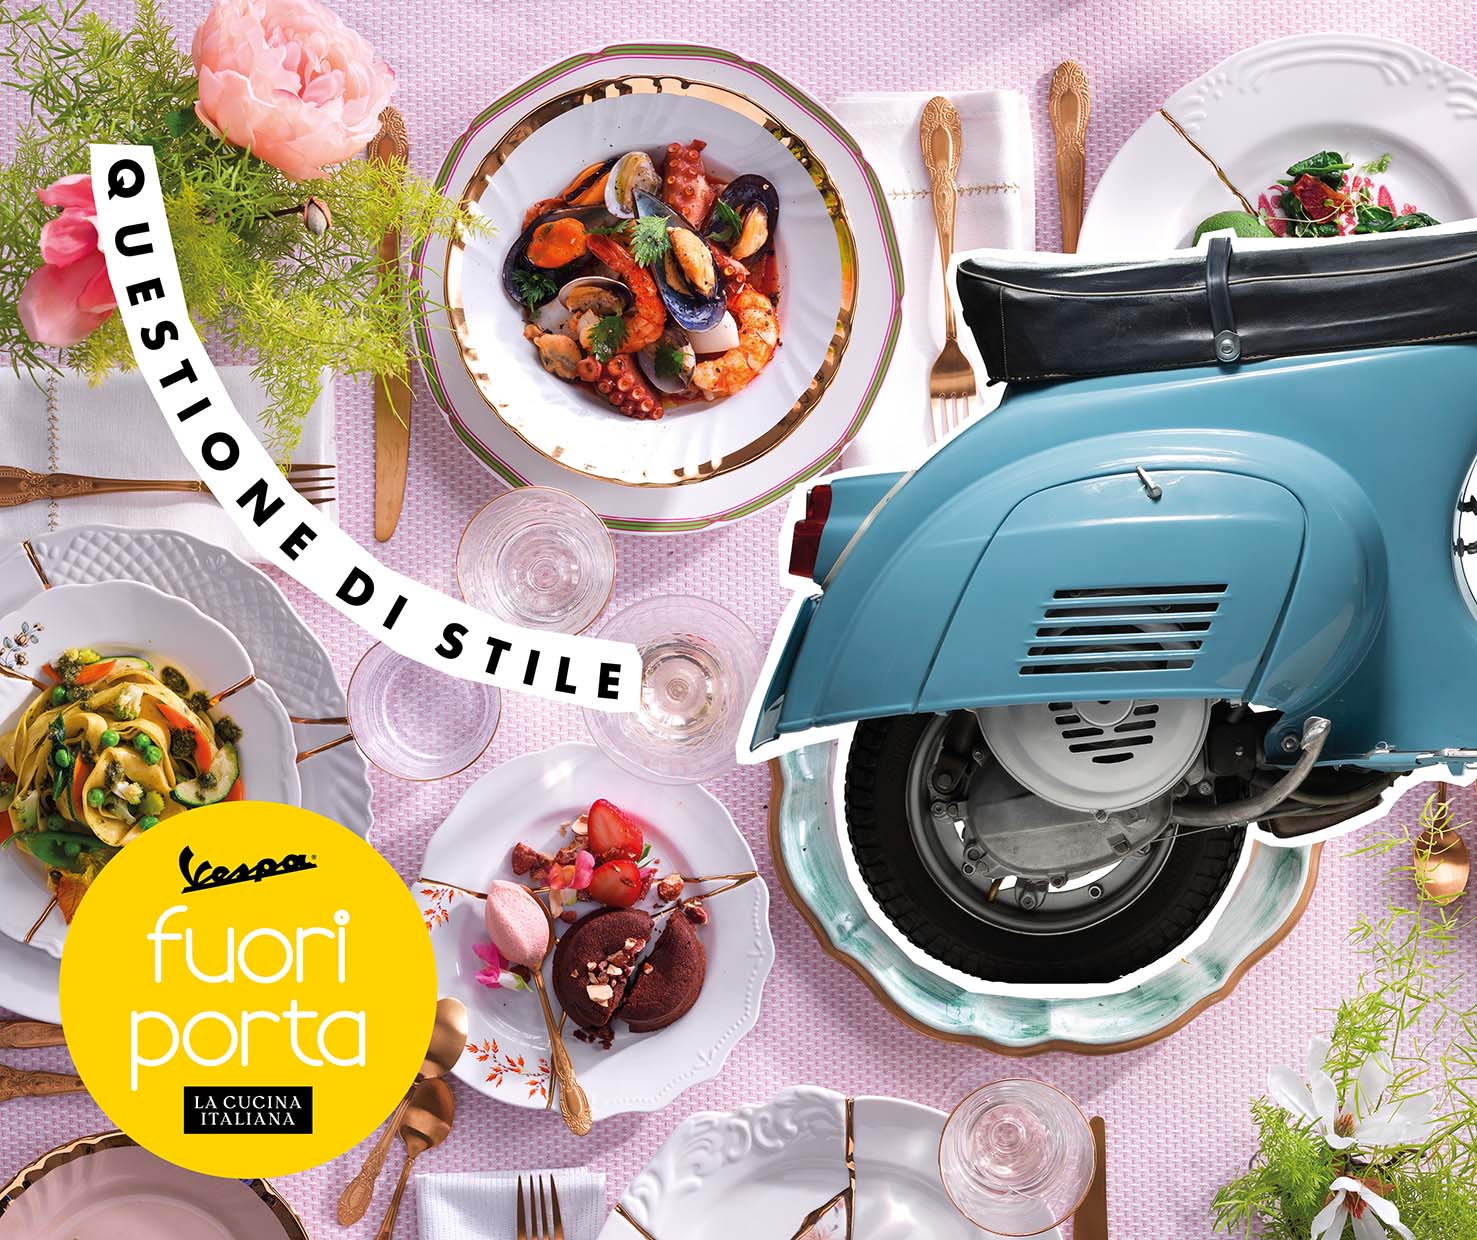 """Fuori Porta"", the journey to discover the history of Italian taste and style"